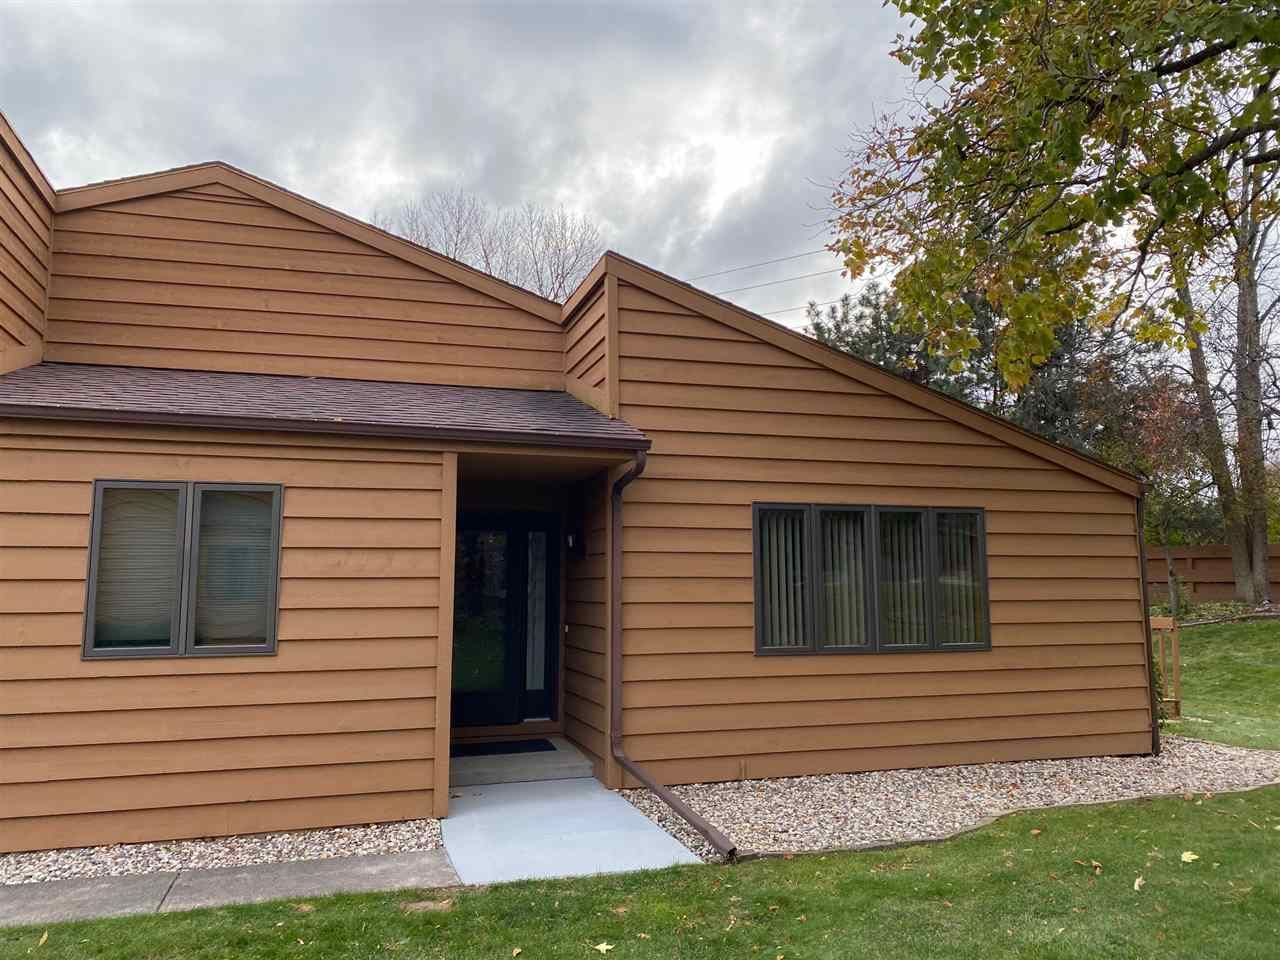 909 E WINDFIELD Place #A, Appleton, WI 54911 - MLS#: 50231801